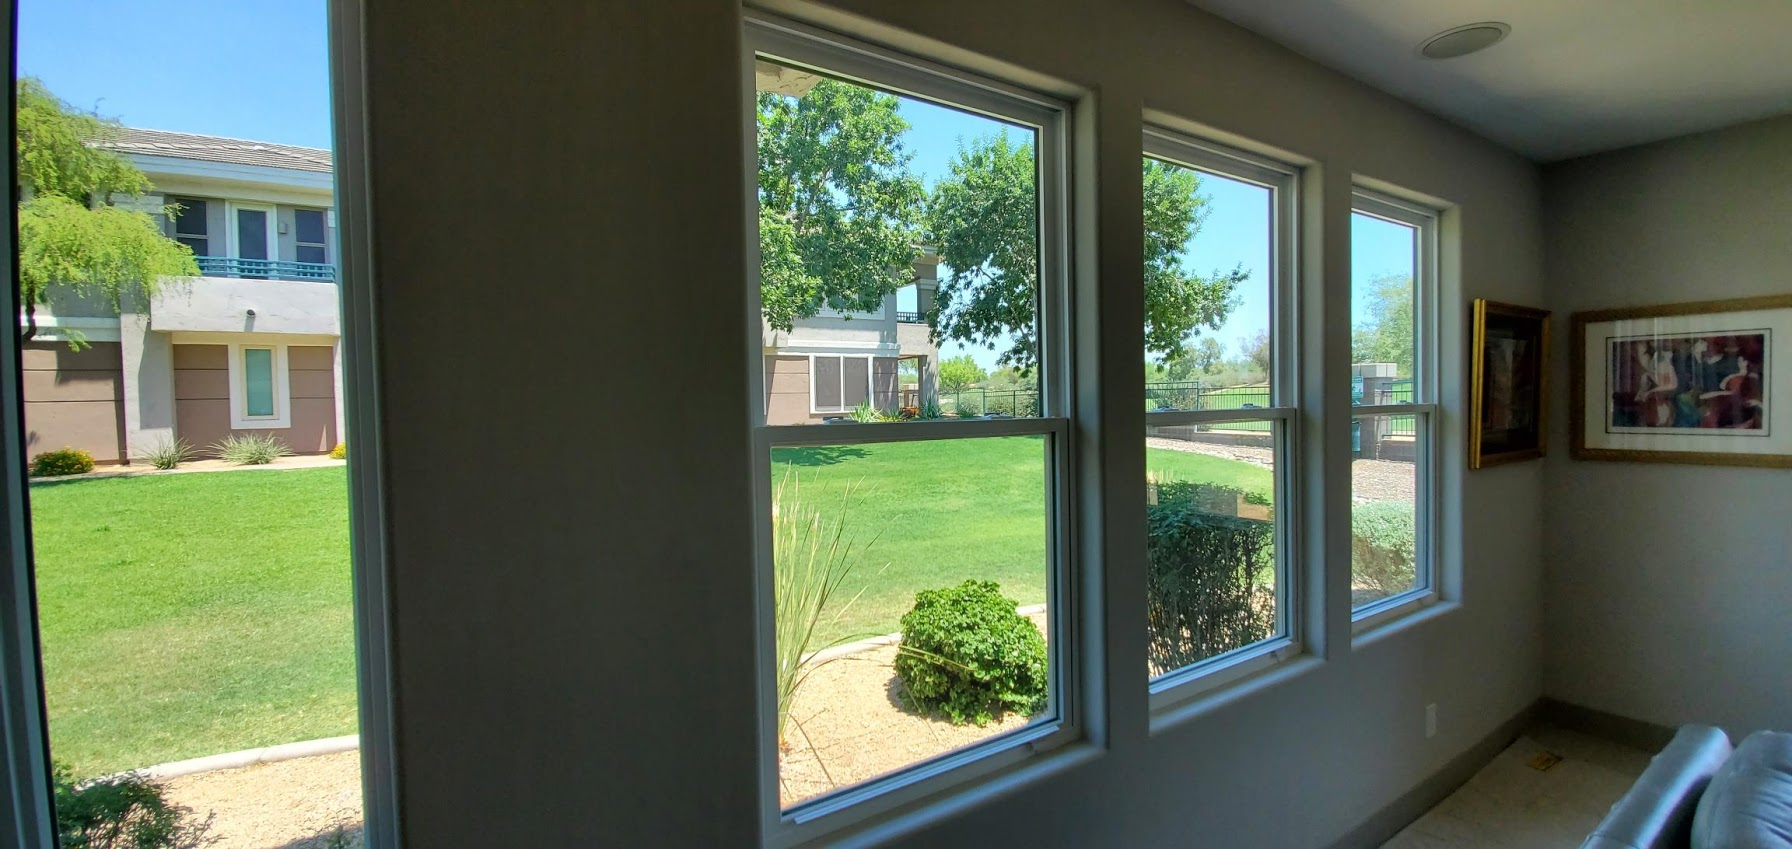 Arizona Window and Door in Scottsdale and Tucson showing multiple sliding windows